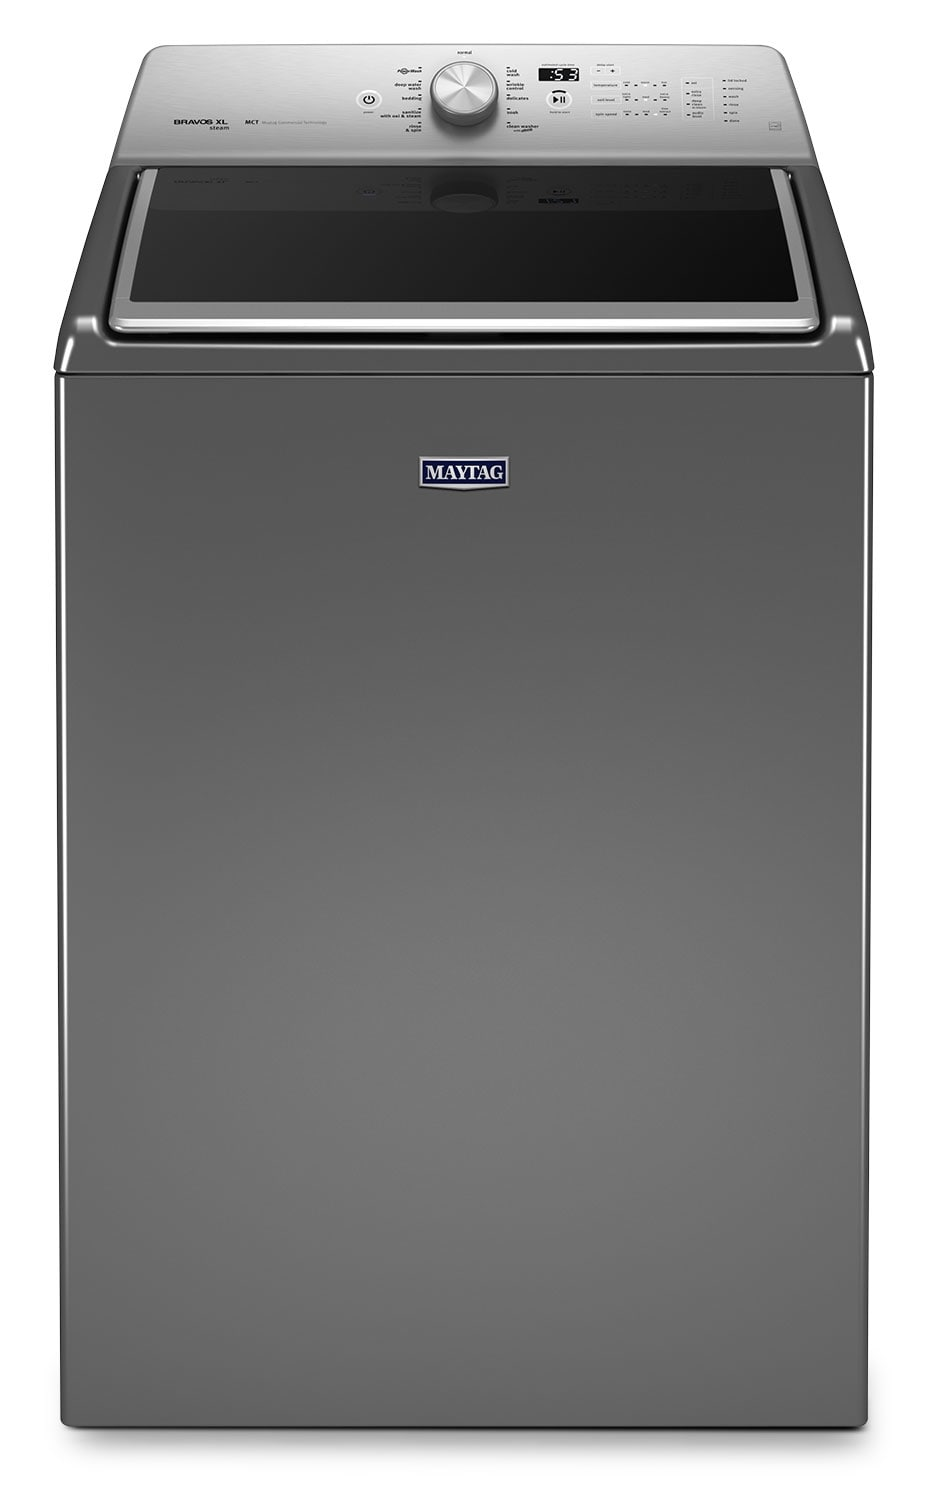 Maytag 6.1 Cu. Ft. Top-Loading Washer – MVWB855DC